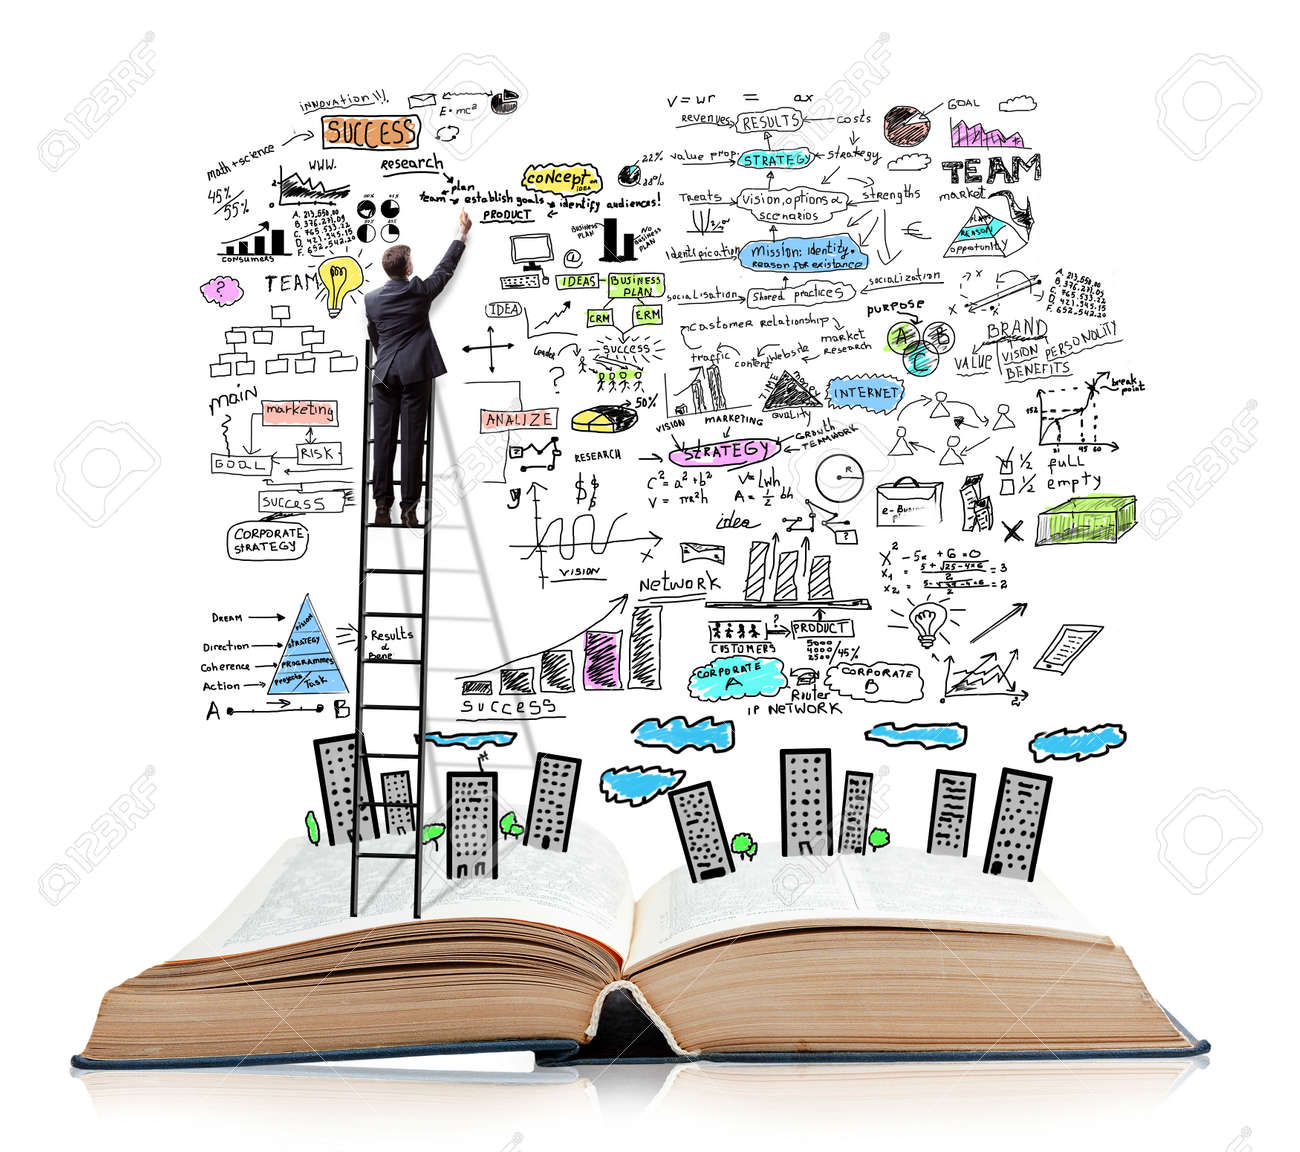 Books on writing a business plan